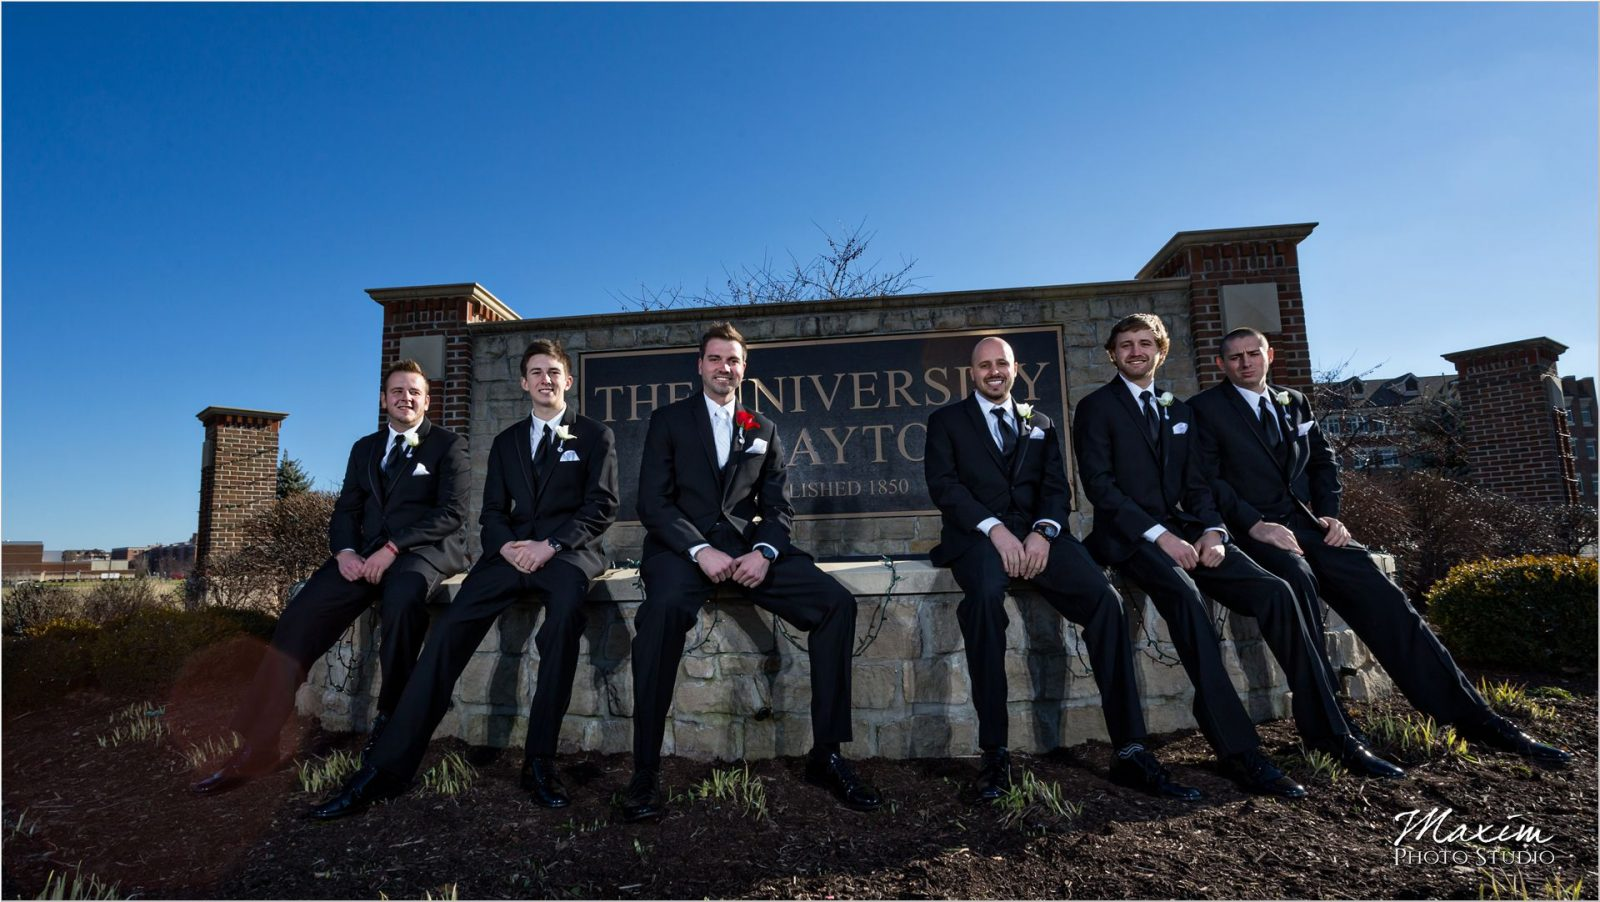 University of Dayton Groom wedding day